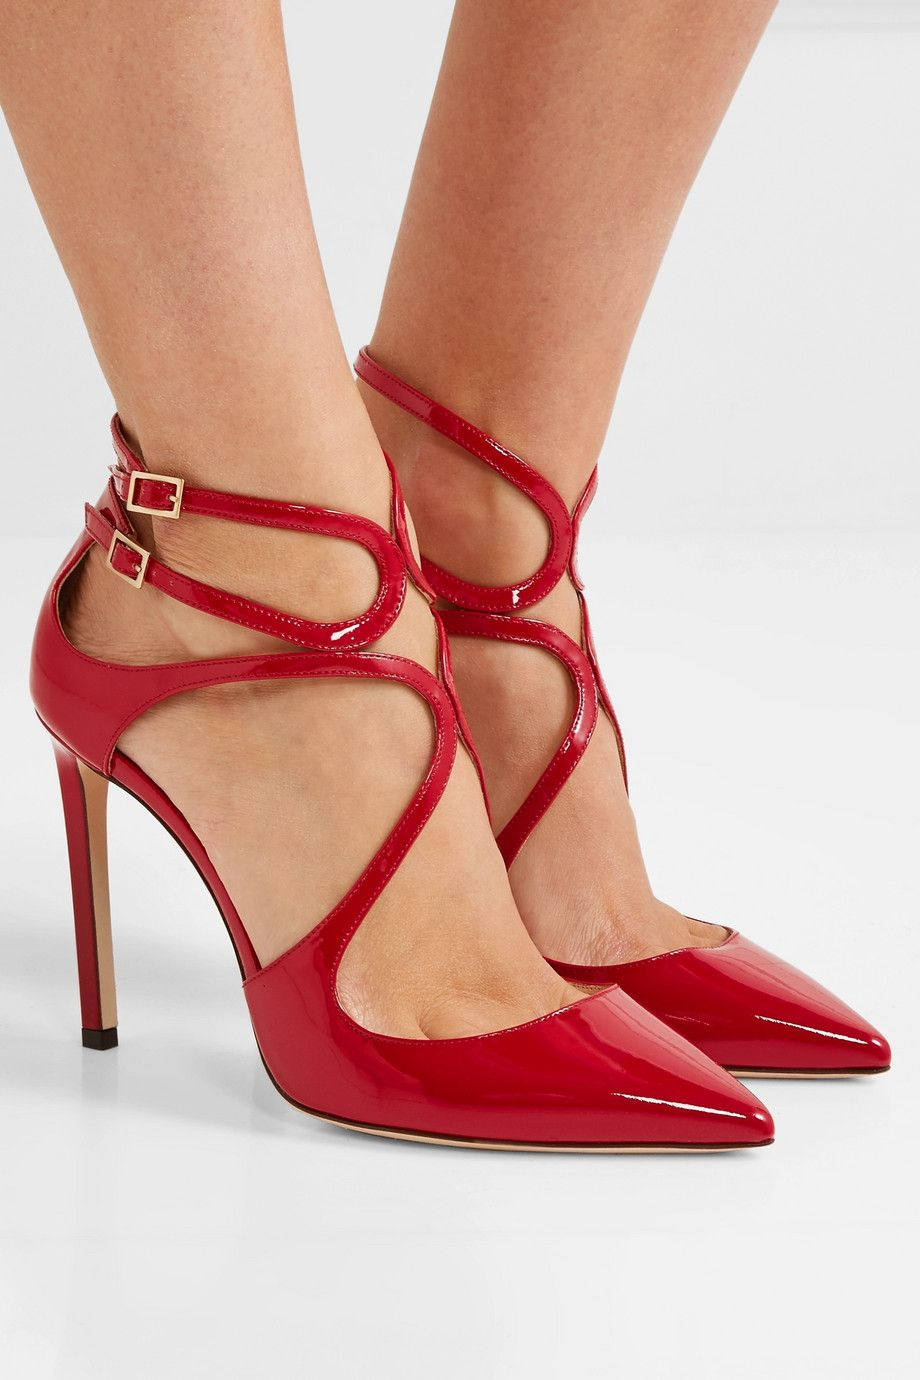 9182c1c0db9f ALEXANDER WANG classy Rina studded leather slingback pumps in 2019 ...